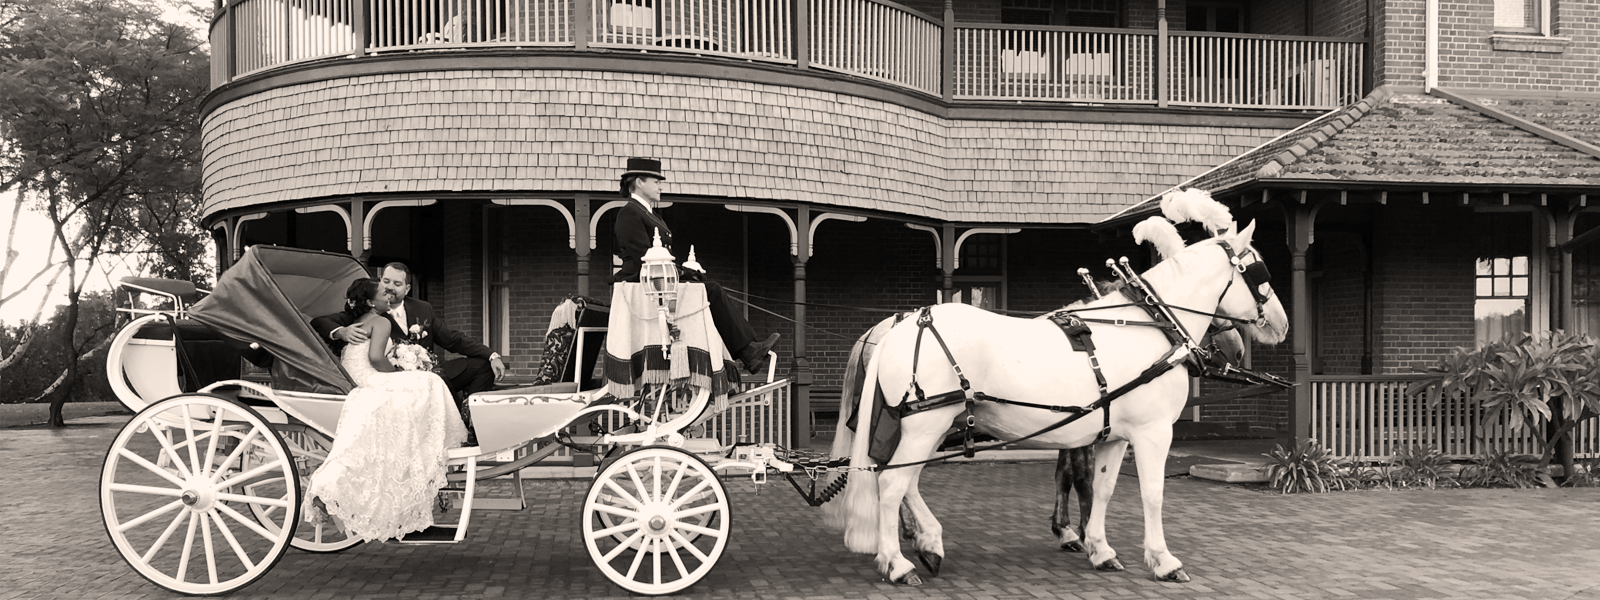 Perth-Horse-&-Carriage-House